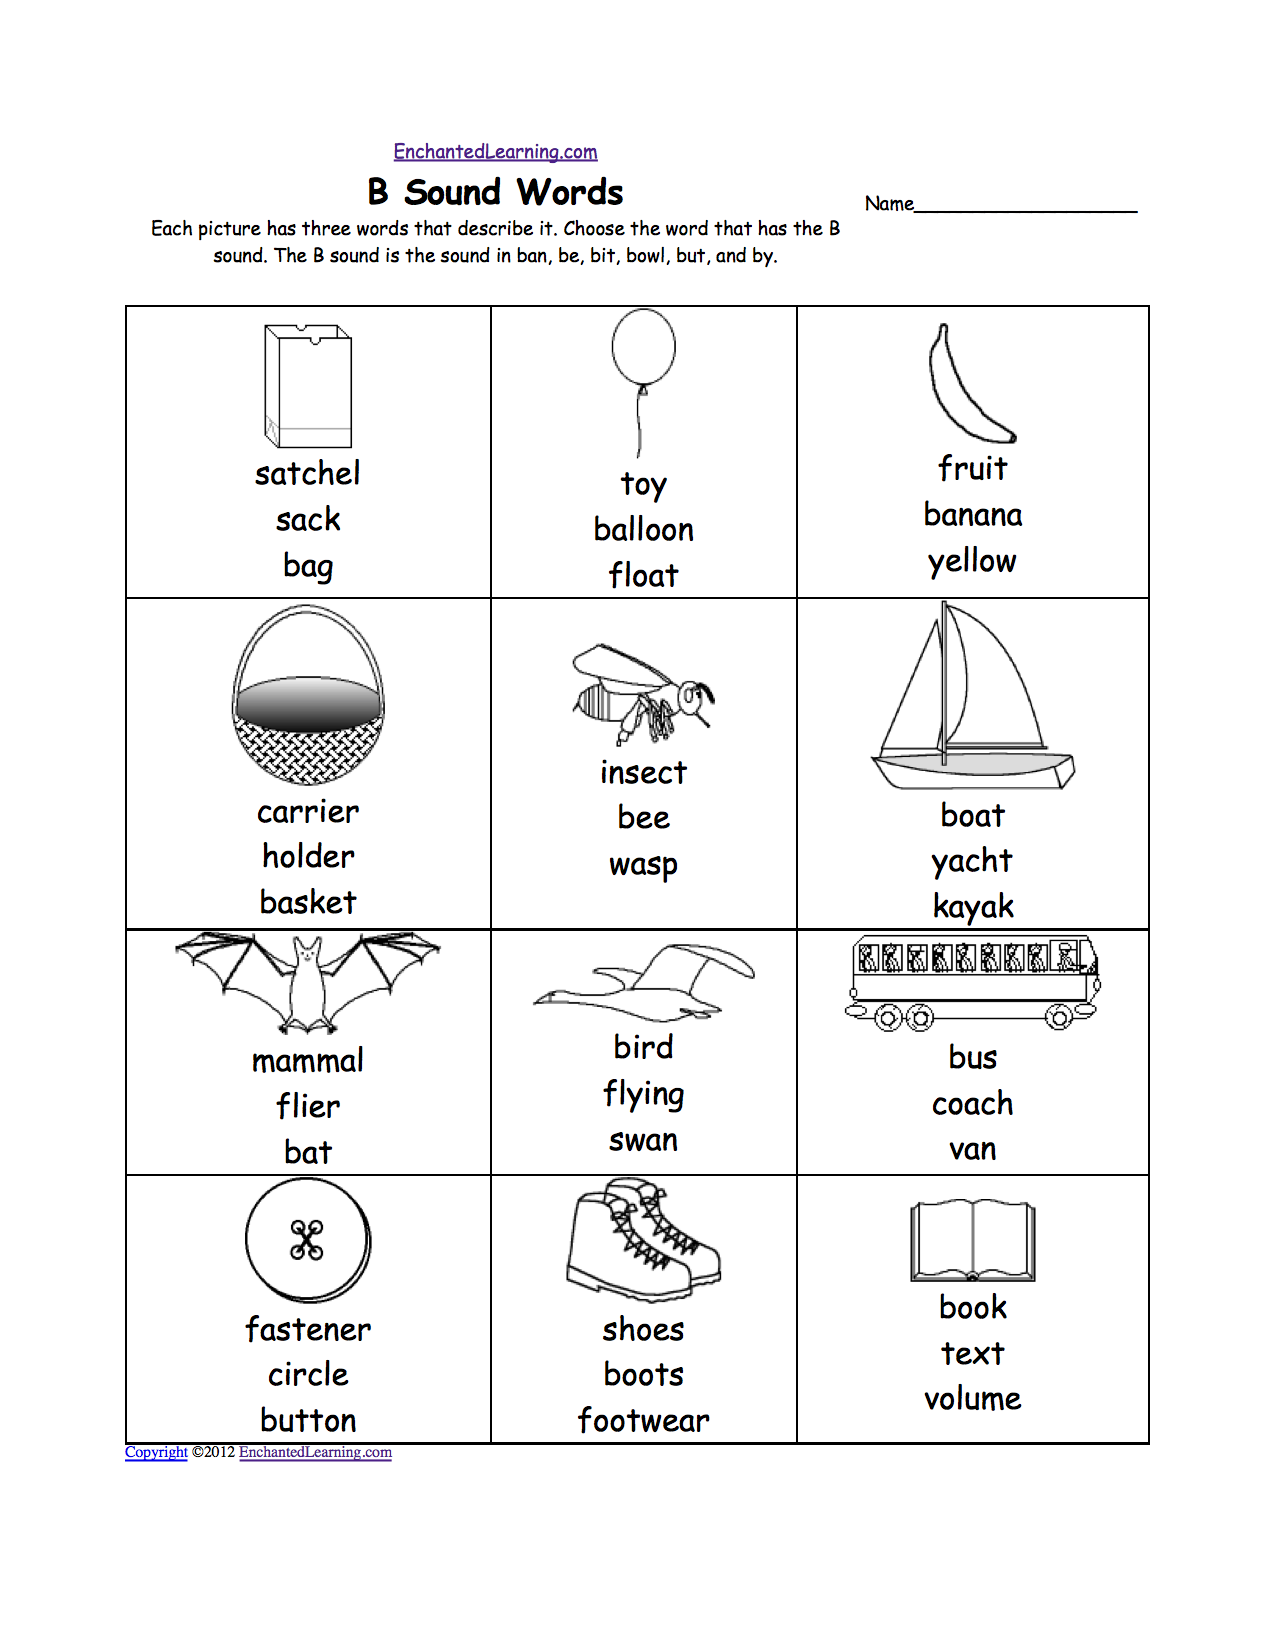 Aldiablosus  Unique Phonics Worksheets Multiple Choice Worksheets To Print  With Marvelous Quotbquot Sound Phonics Worksheet Multiple Choice Each Picture Has Three Words That Describe It Choose The Word That Has A Quotbquot Sound The Quotbquot Sound Is The Sound  With Easy On The Eye Subjunctive Worksheet Also Color By Number Worksheets For Kindergarten In Addition Free Printable Third Grade Math Worksheets And Graphing Calculator Worksheet As Well As Blank Multiplication Table Worksheet Additionally Sentence And Fragment Worksheets From Enchantedlearningcom With Aldiablosus  Marvelous Phonics Worksheets Multiple Choice Worksheets To Print  With Easy On The Eye Quotbquot Sound Phonics Worksheet Multiple Choice Each Picture Has Three Words That Describe It Choose The Word That Has A Quotbquot Sound The Quotbquot Sound Is The Sound  And Unique Subjunctive Worksheet Also Color By Number Worksheets For Kindergarten In Addition Free Printable Third Grade Math Worksheets From Enchantedlearningcom